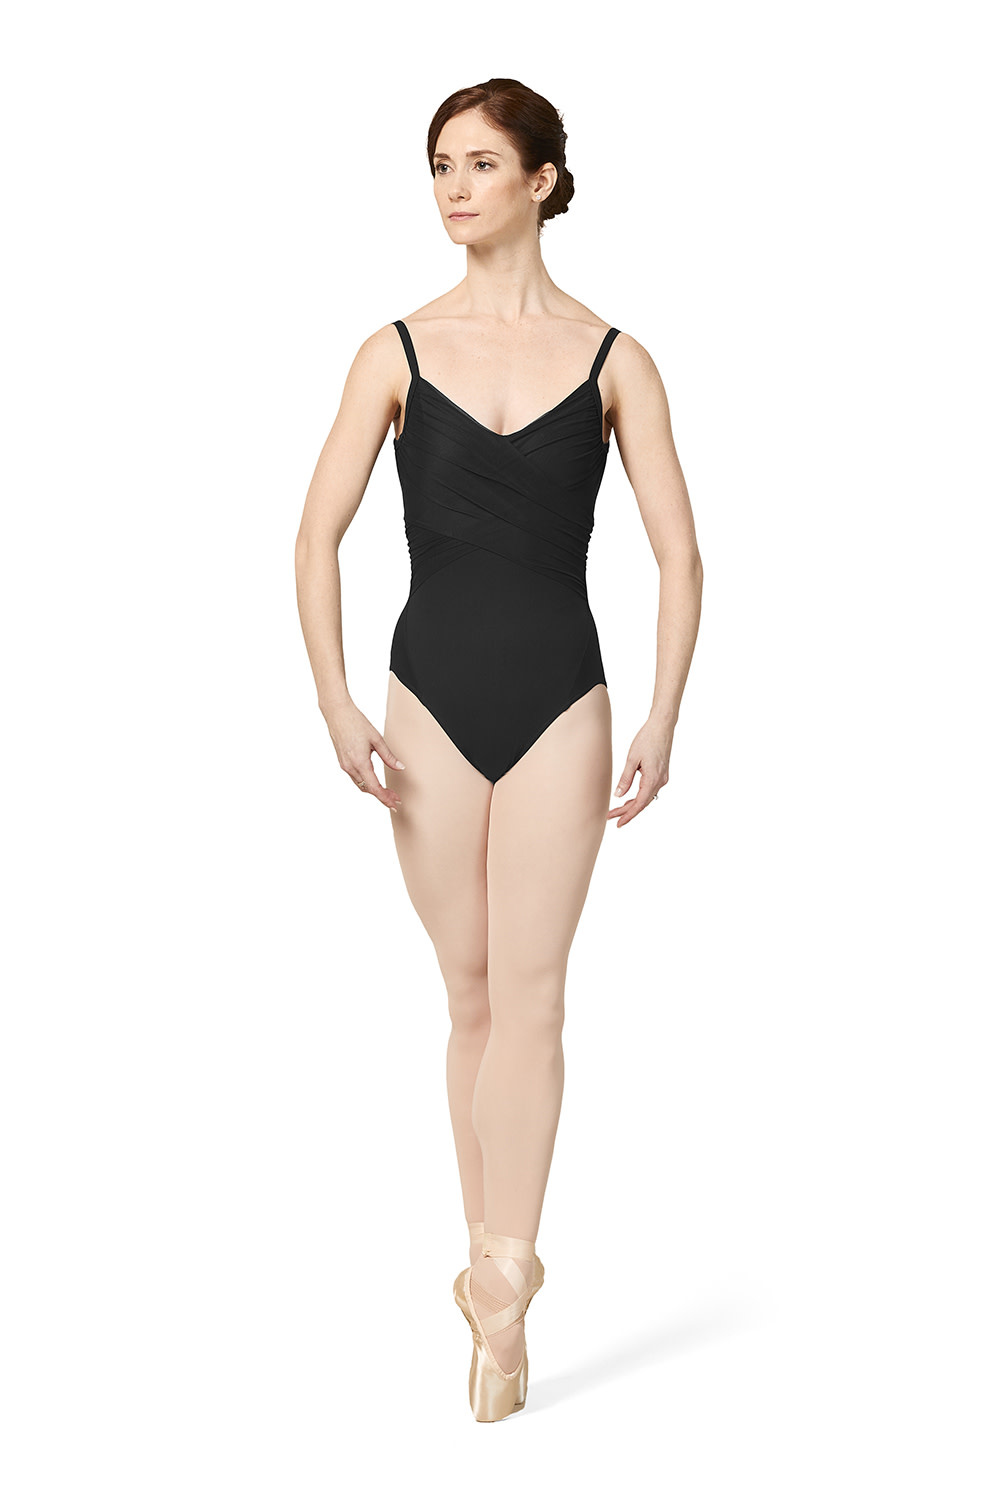 Mirella M2172LM Bodysuit for Adults